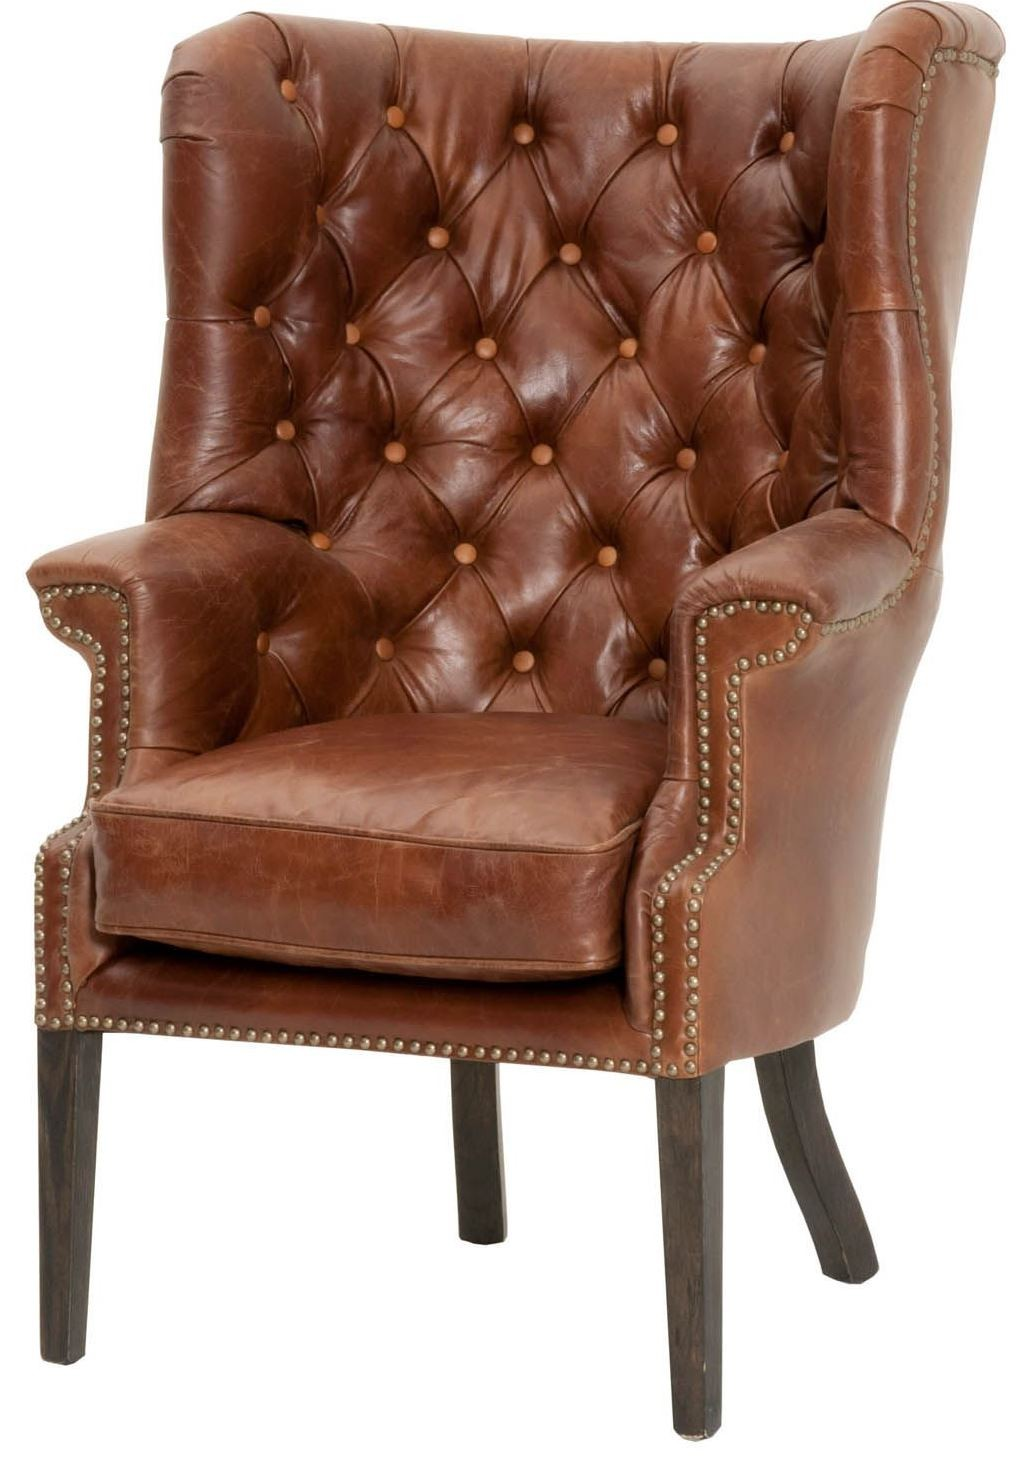 Patina Cafe Hughes Club Chair From Orient Express 8211 Chntant Gl C Coleman Furniture